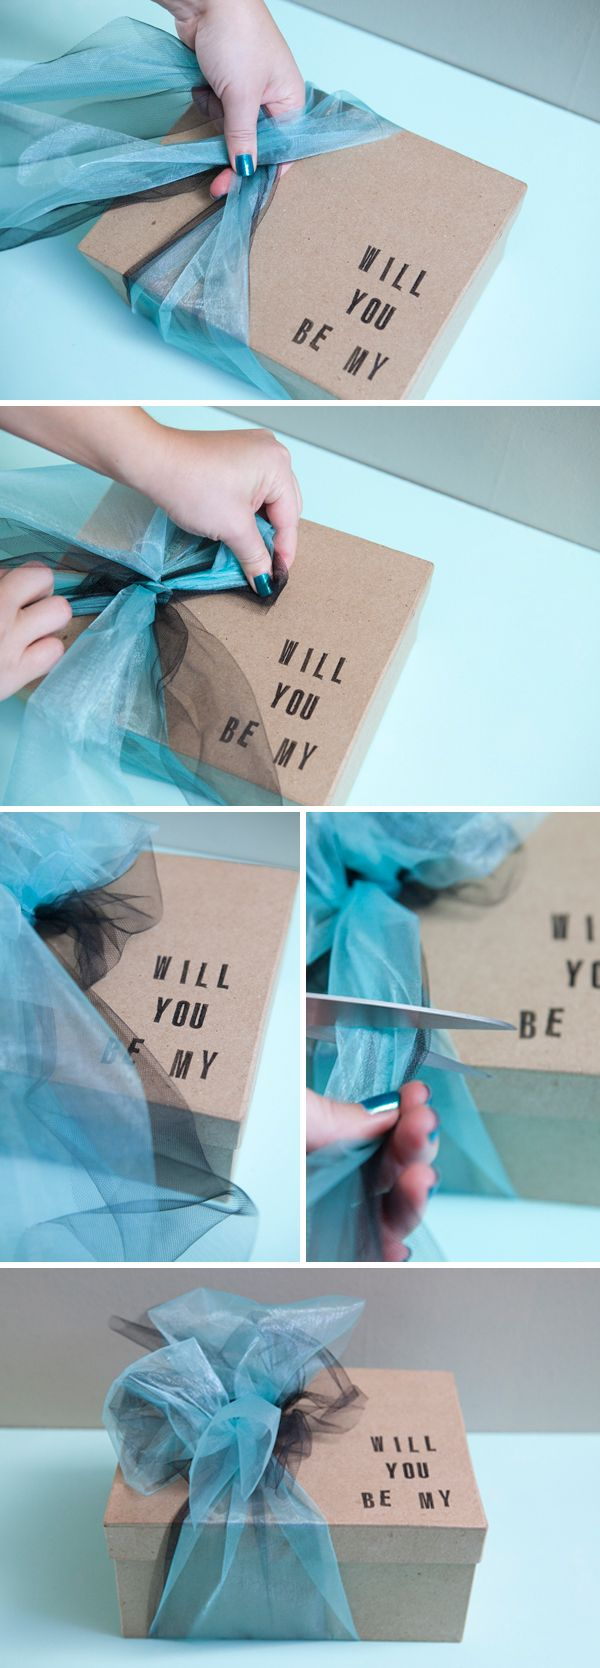 DIY   will you be my bridesmaid  Can  39 t wait to do this